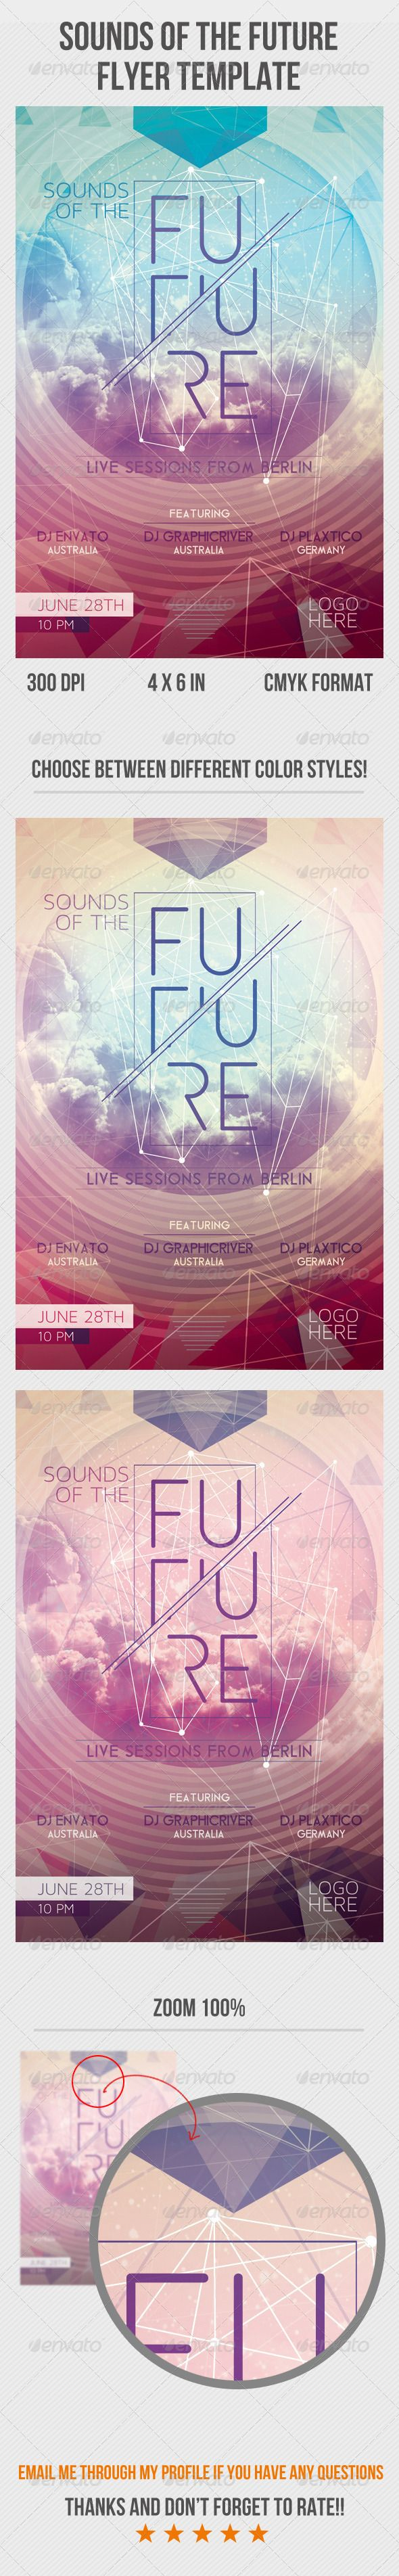 Sounds Of The Future Flyer Template PSD | Buy and Download: http://graphicriver.net/item/sounds-of-the-future/8437925?WT.ac=category_thumb&WT.z_author=plaxtico&ref=ksioks